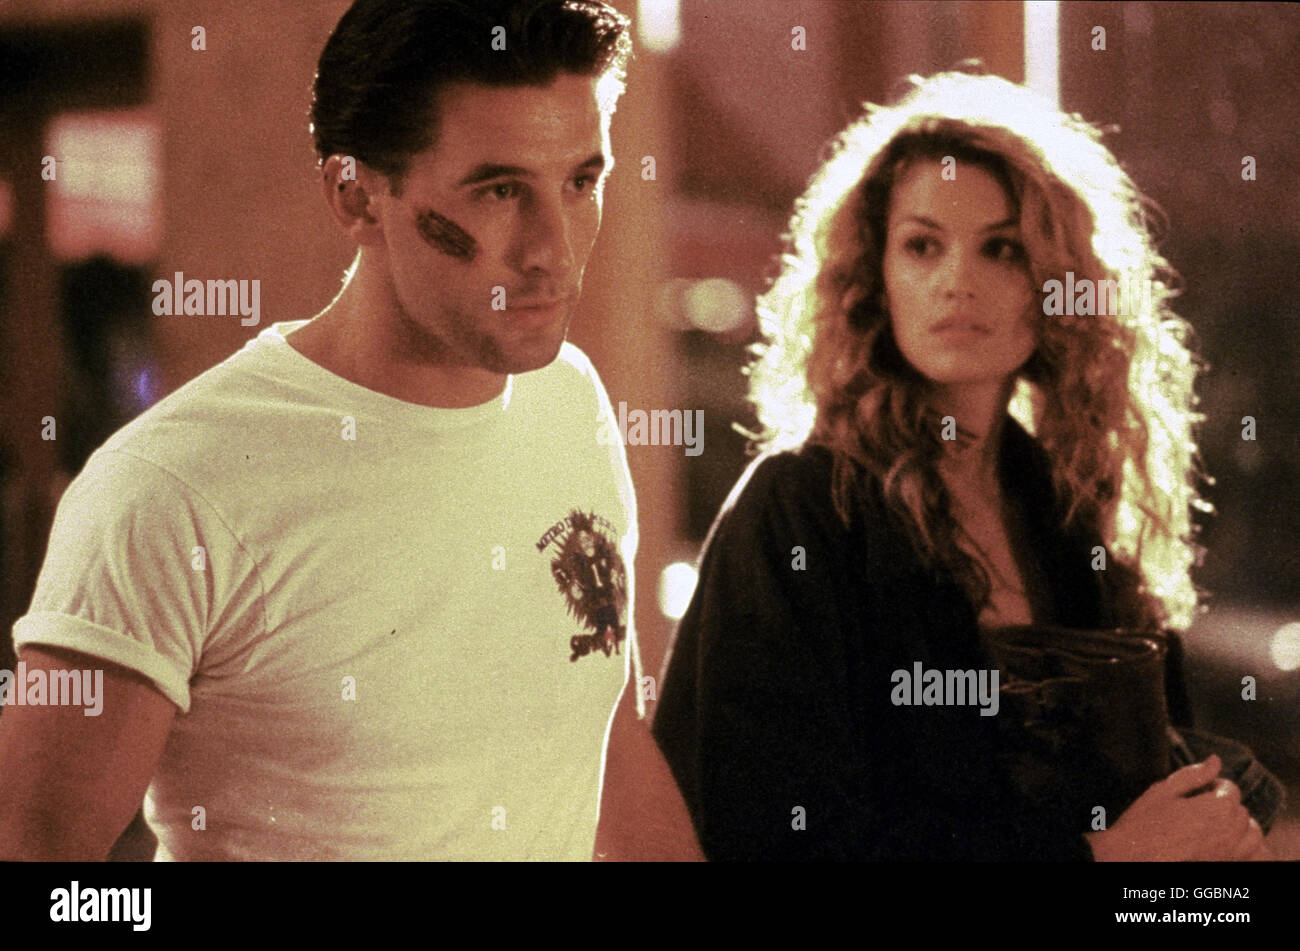 FAIR GAME / Fair Game USA 1995 / Max (WILLIAM BALDWIN) und Kate (CINDY CRAWFORD) werden von KGB-Agenten gejagt. - Stock Image